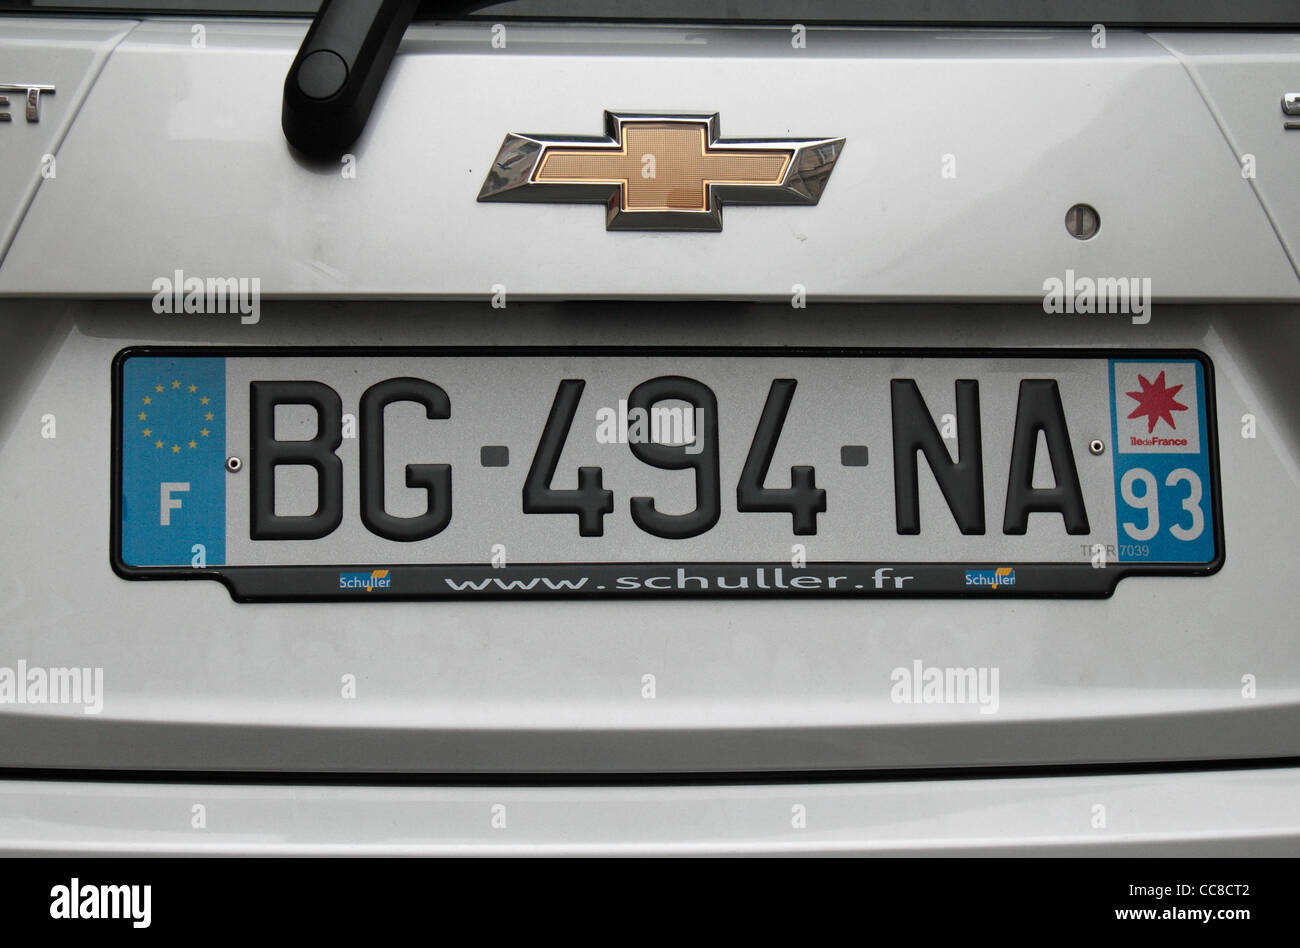 French Number Plate Stock Photos & French Number Plate Stock Images ...